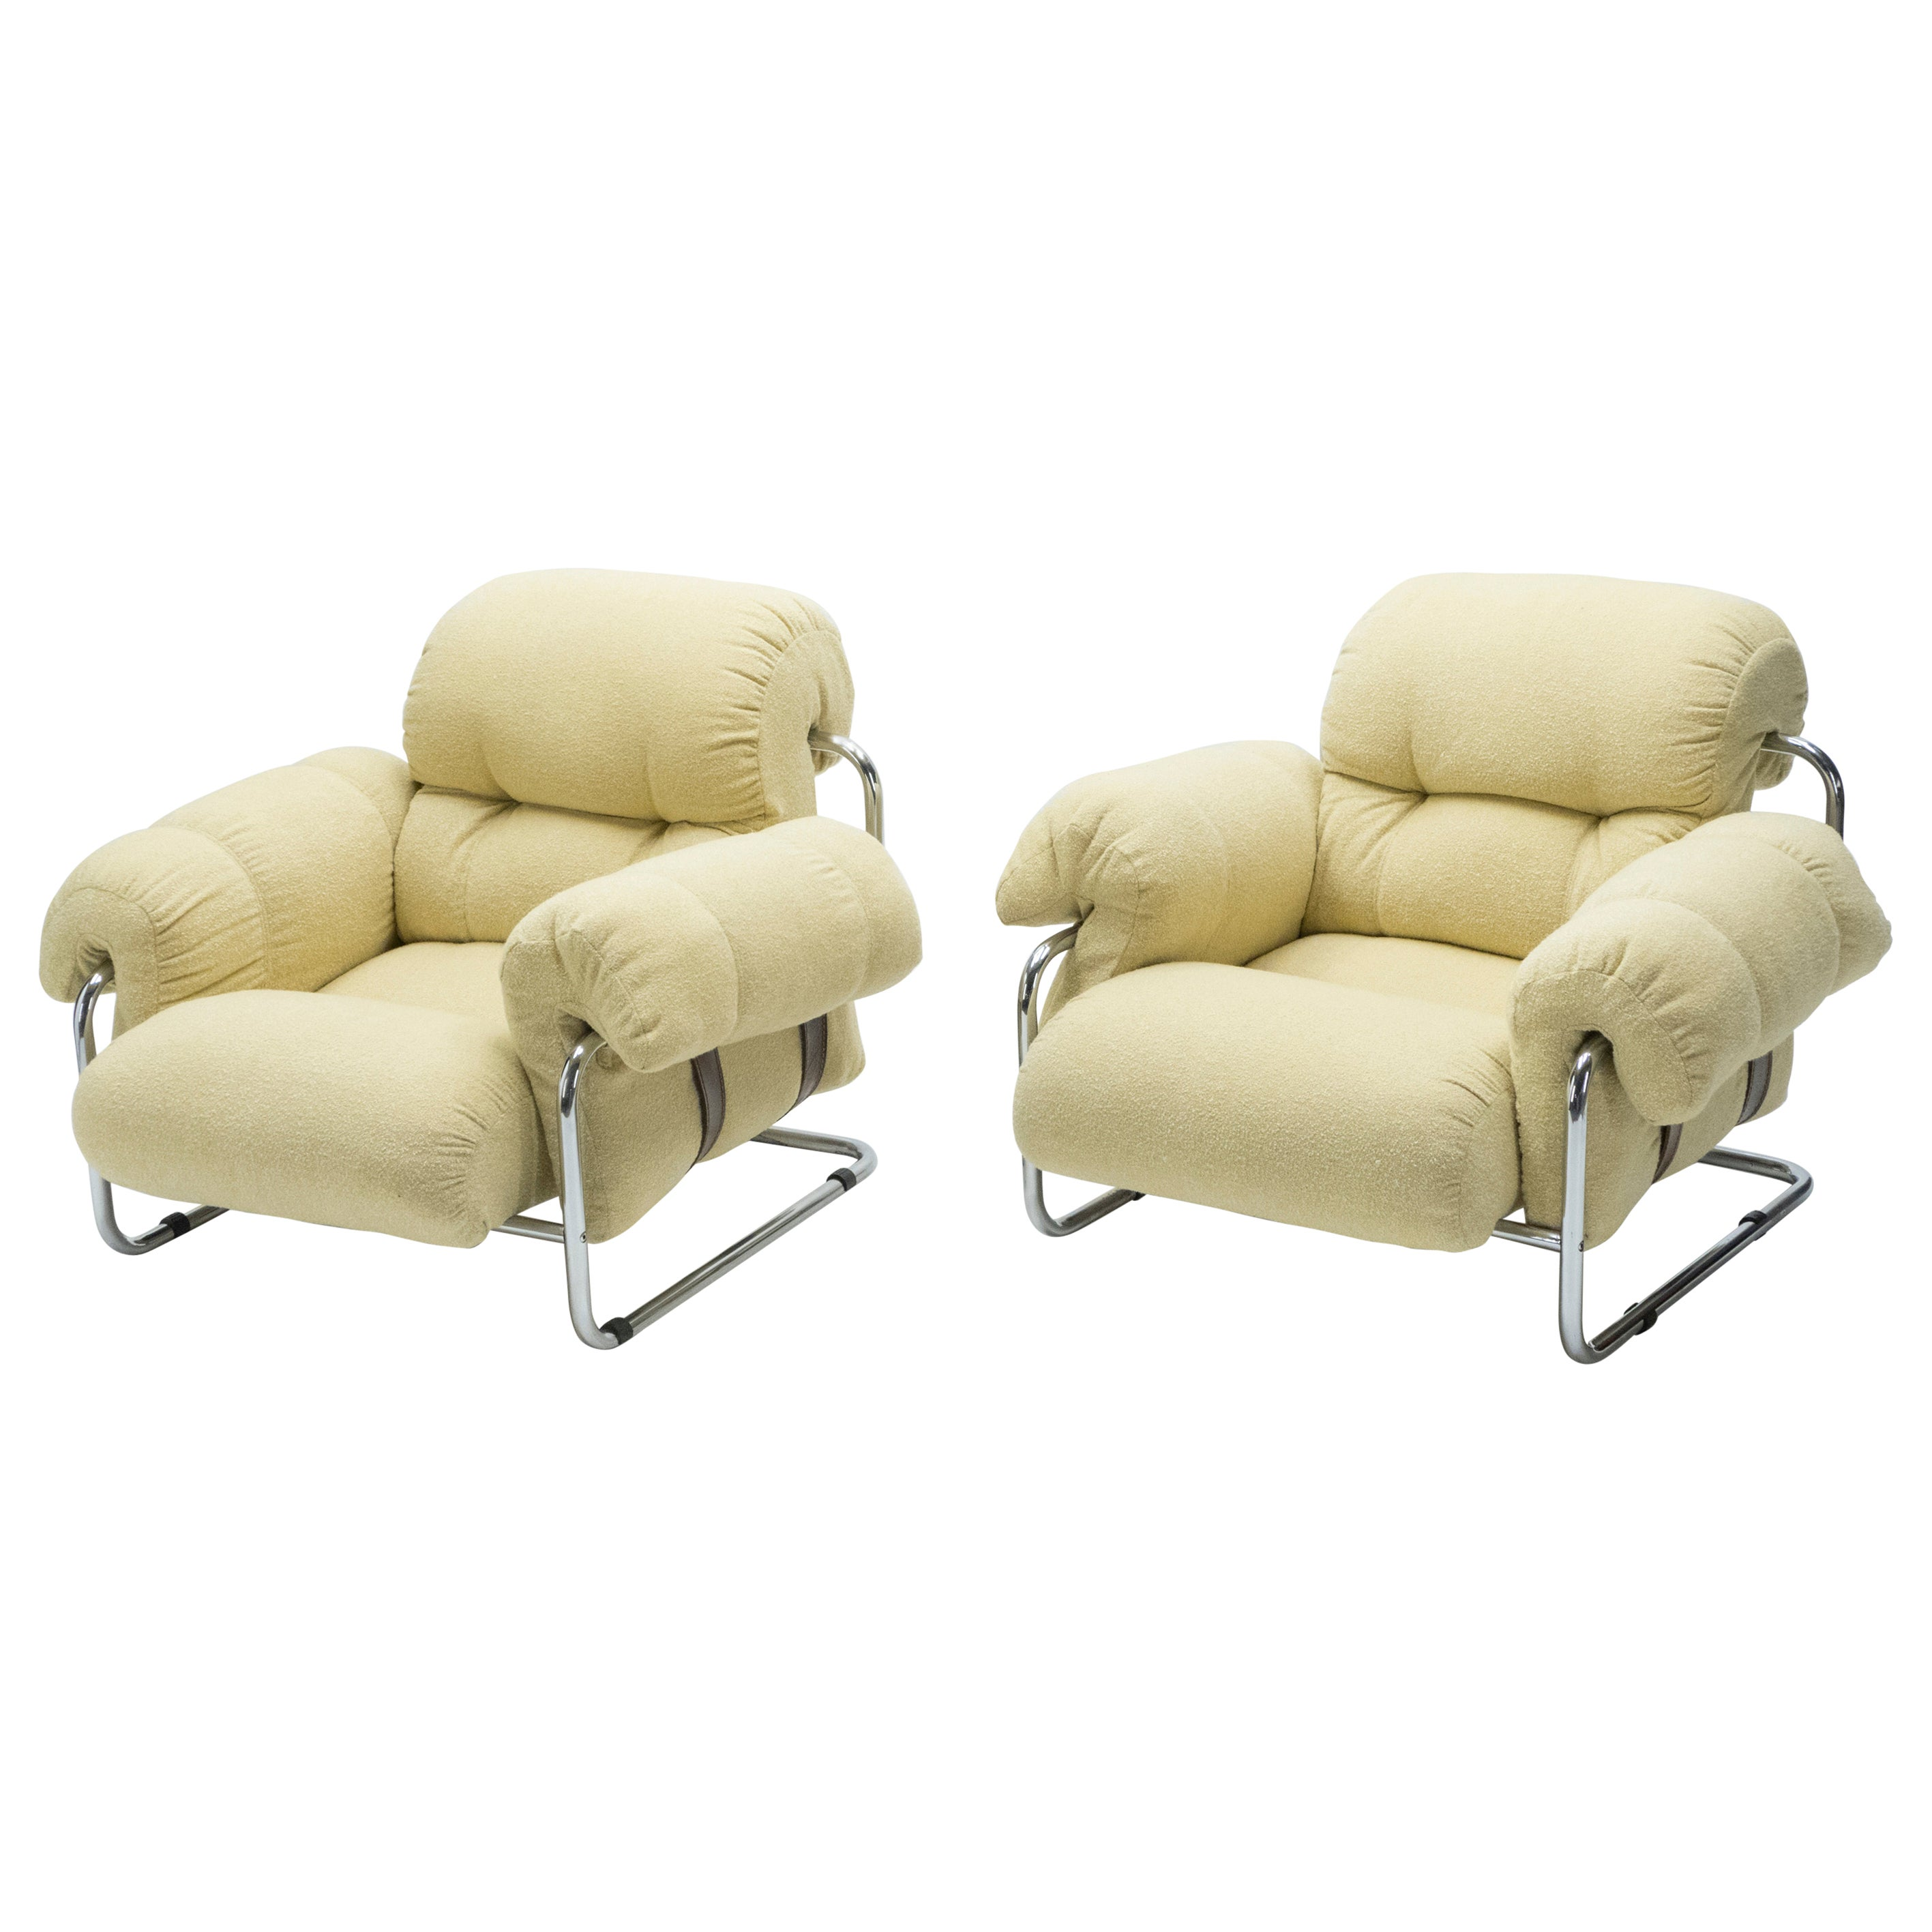 """Rare Pair of Italian """"Tucroma"""" Armchairs by Guido Faleschini for Mariani, 1970s"""